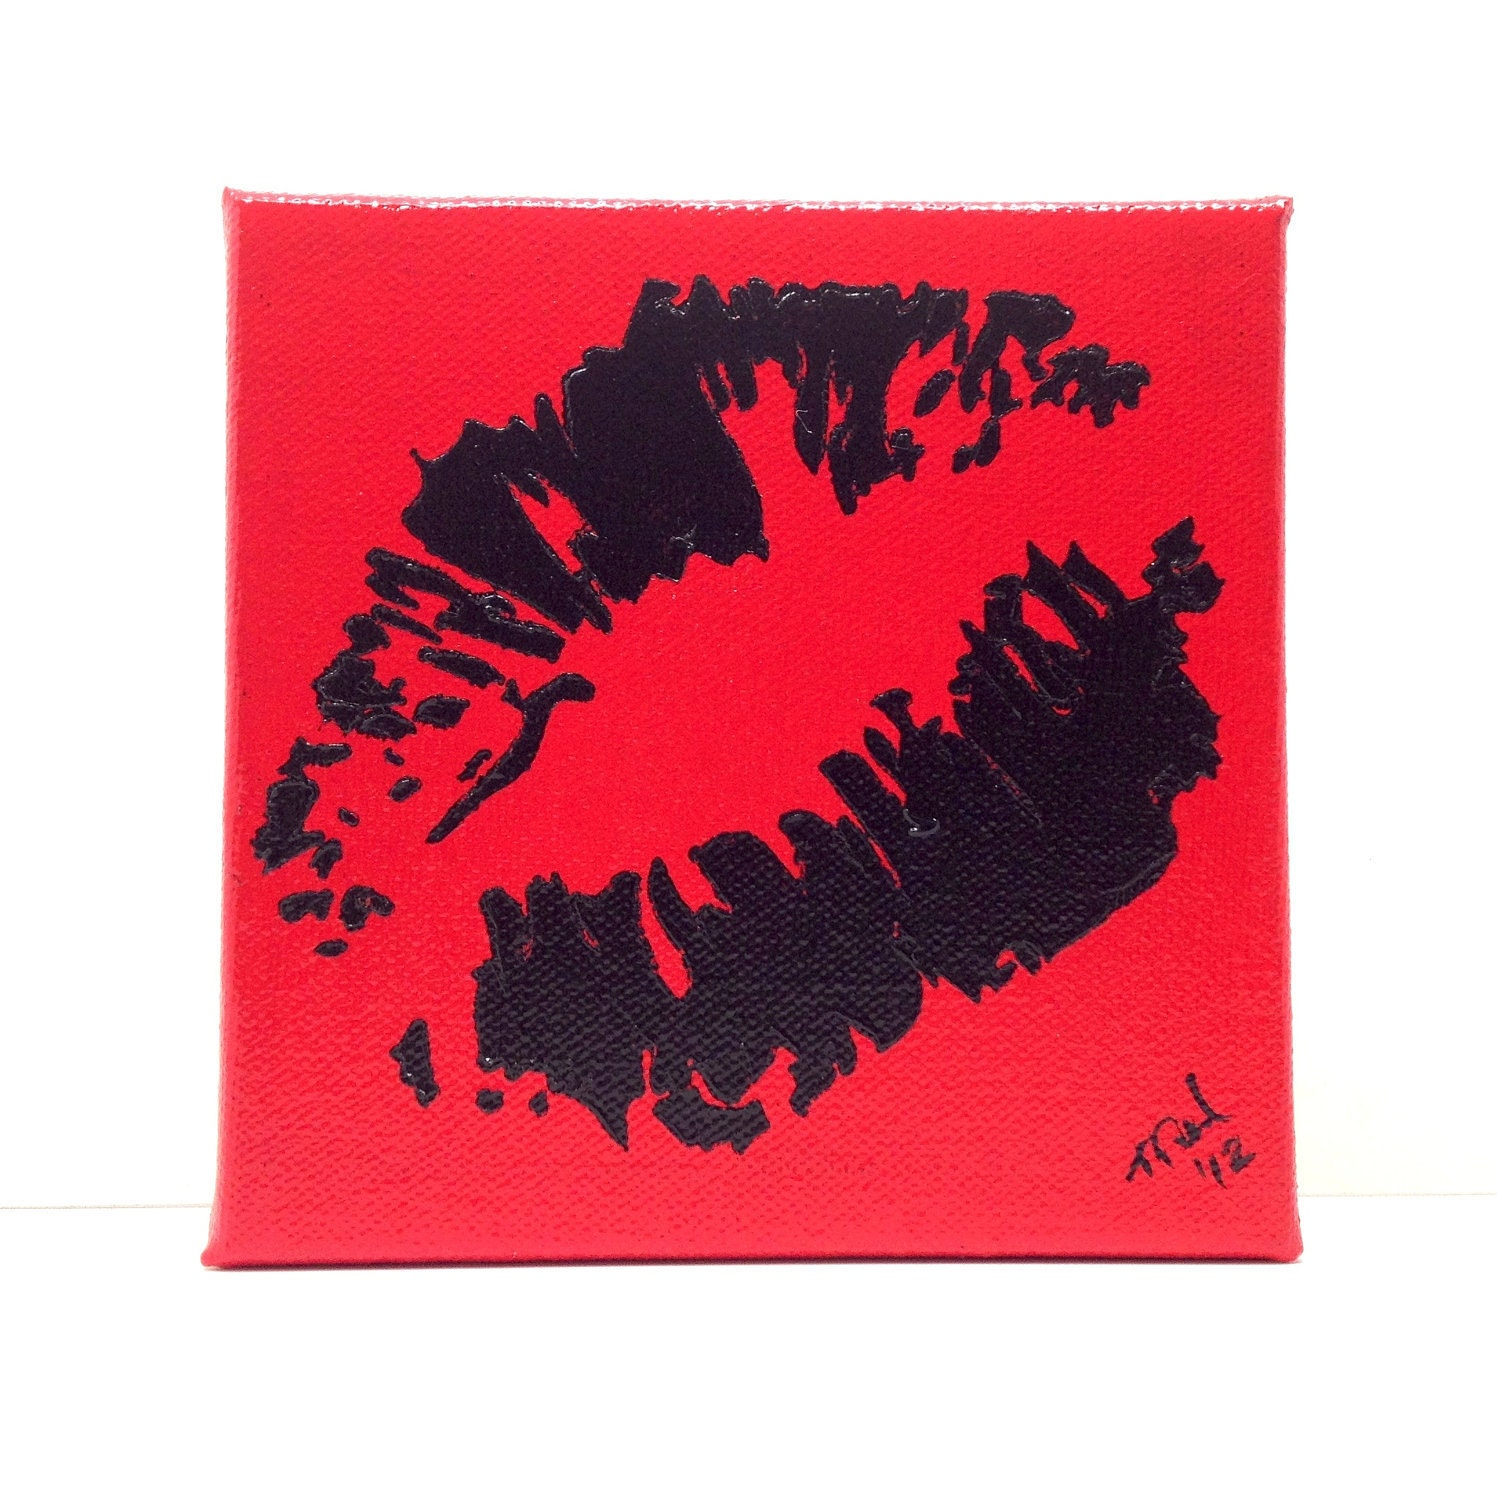 Pop Art, Graffiti Kiss, Lips, Black on Red Painting